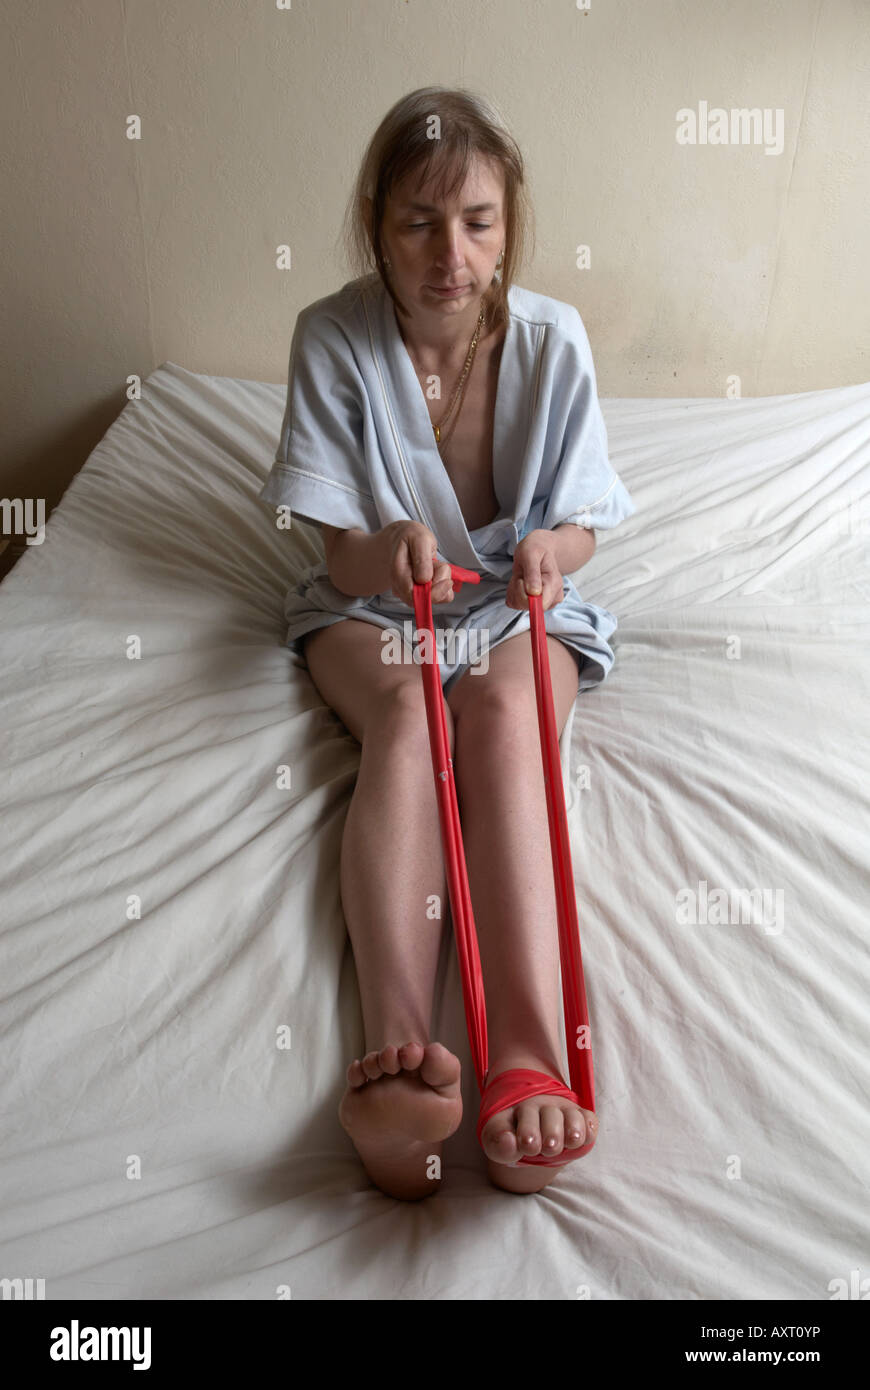 Exercising feet when one has drop foot using bungee to pull up dropped foot, the toes of the left foot look 'dead' - Stock Image